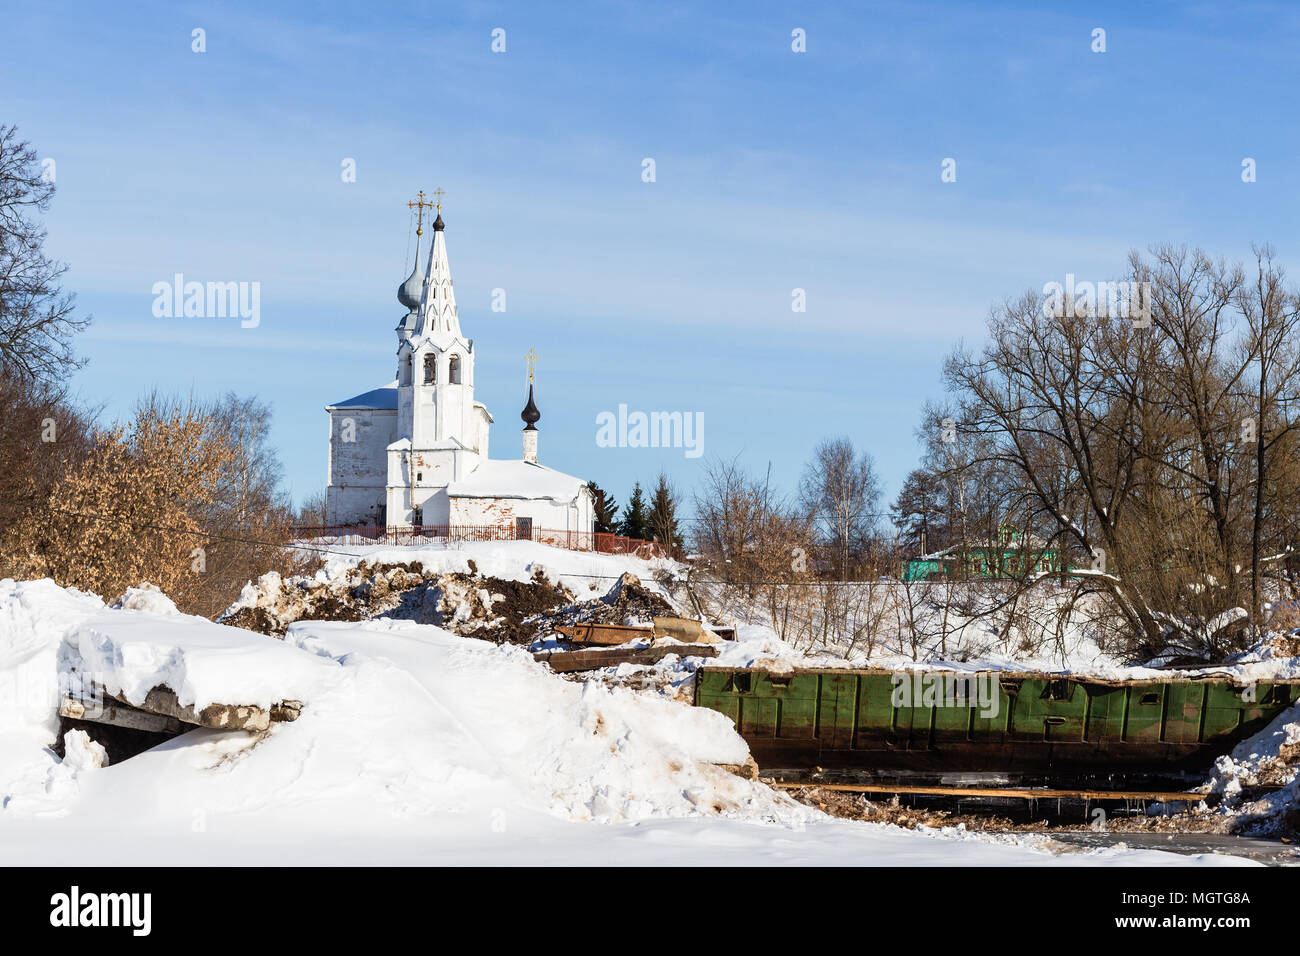 view of Temple of St Cosmas and St Damian (Kozmodemyanskaya Church) on Yarunova Hill from ravine in Suzdal town in winter in Vladimir oblast of Russia - Stock Image